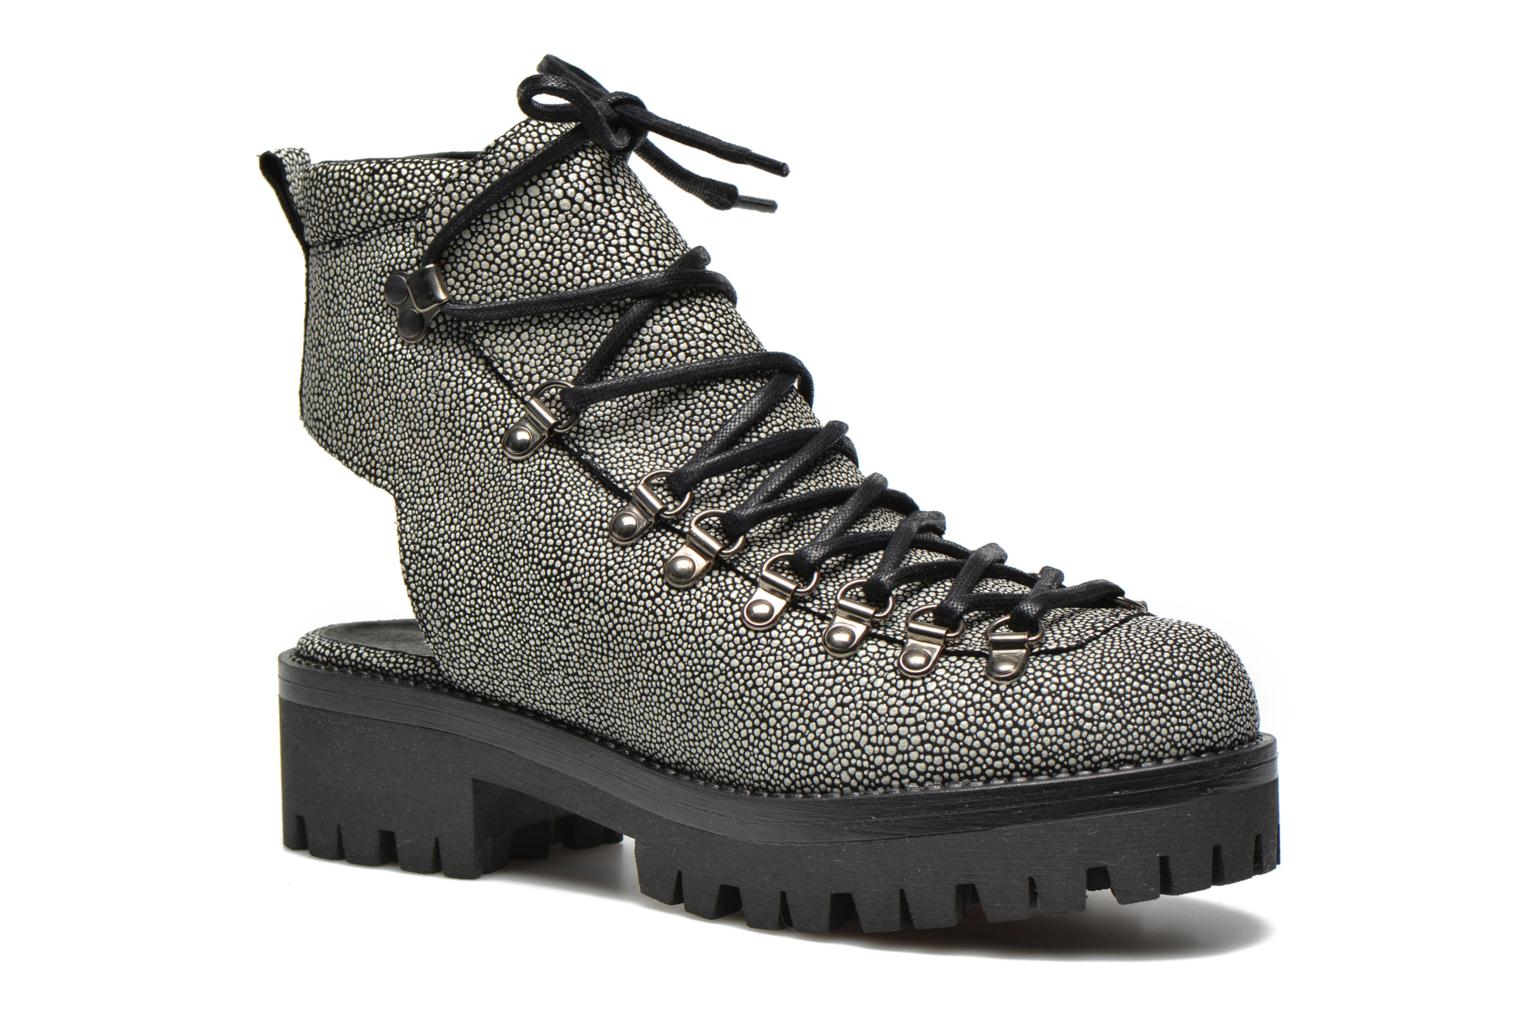 Bottines et boots Intentionally blank Tharp Gris vue détail/paire